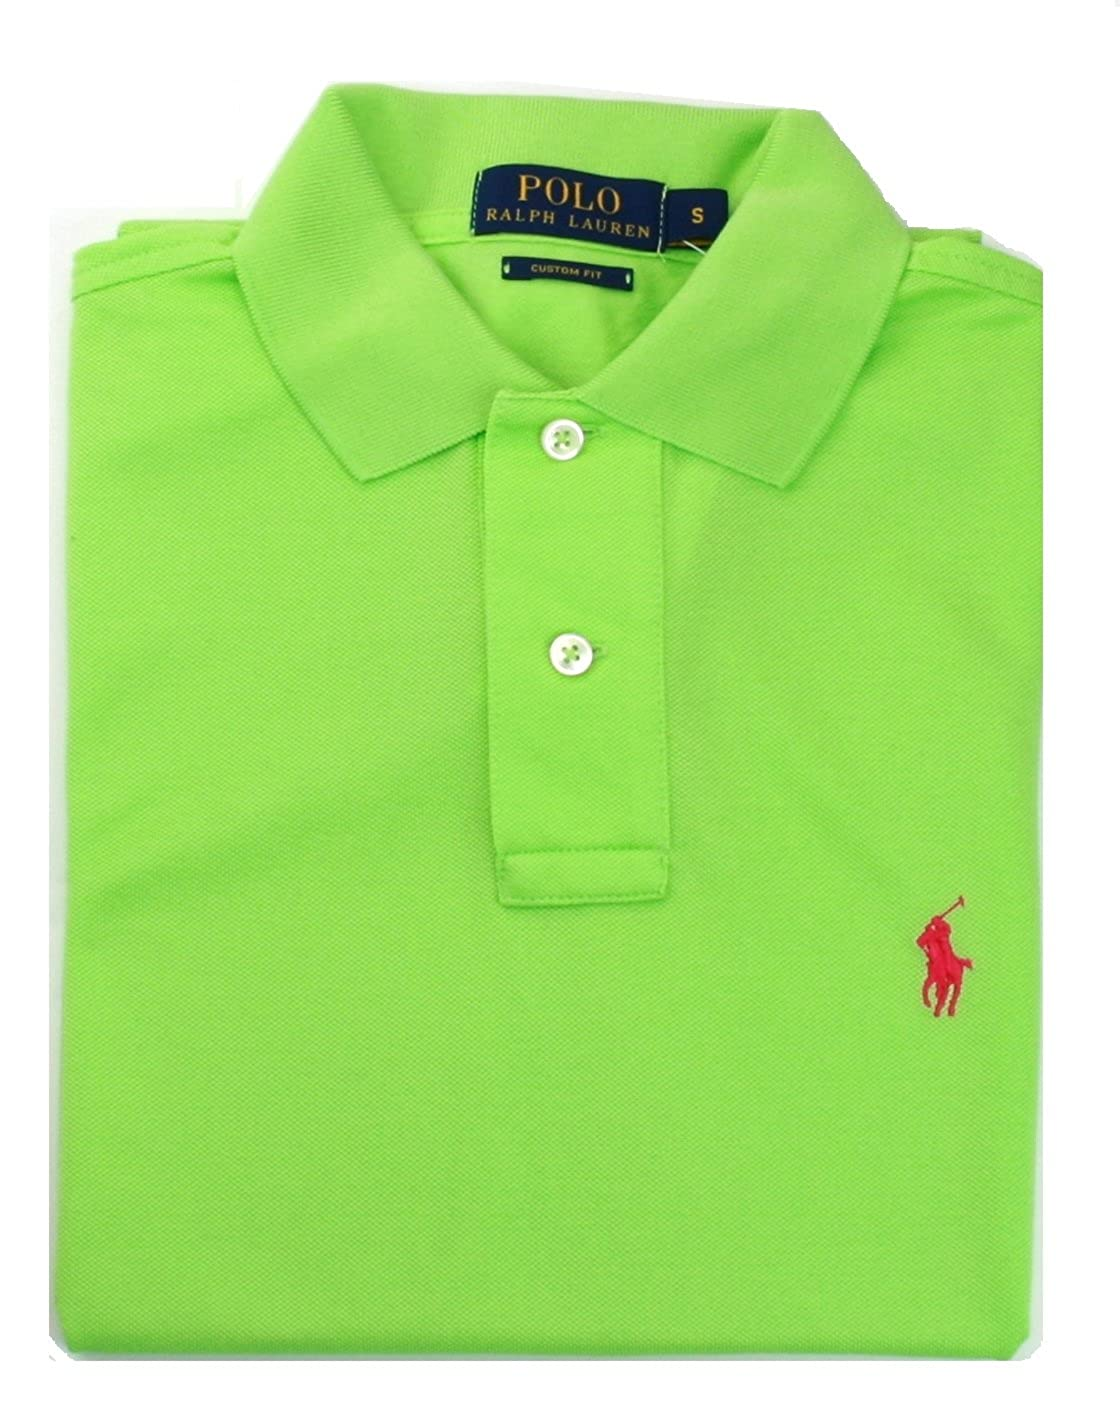 Polo Ralph Bright Rrp Mens Green Small Shirt Lauren Custom Fit hrBtdsQCx